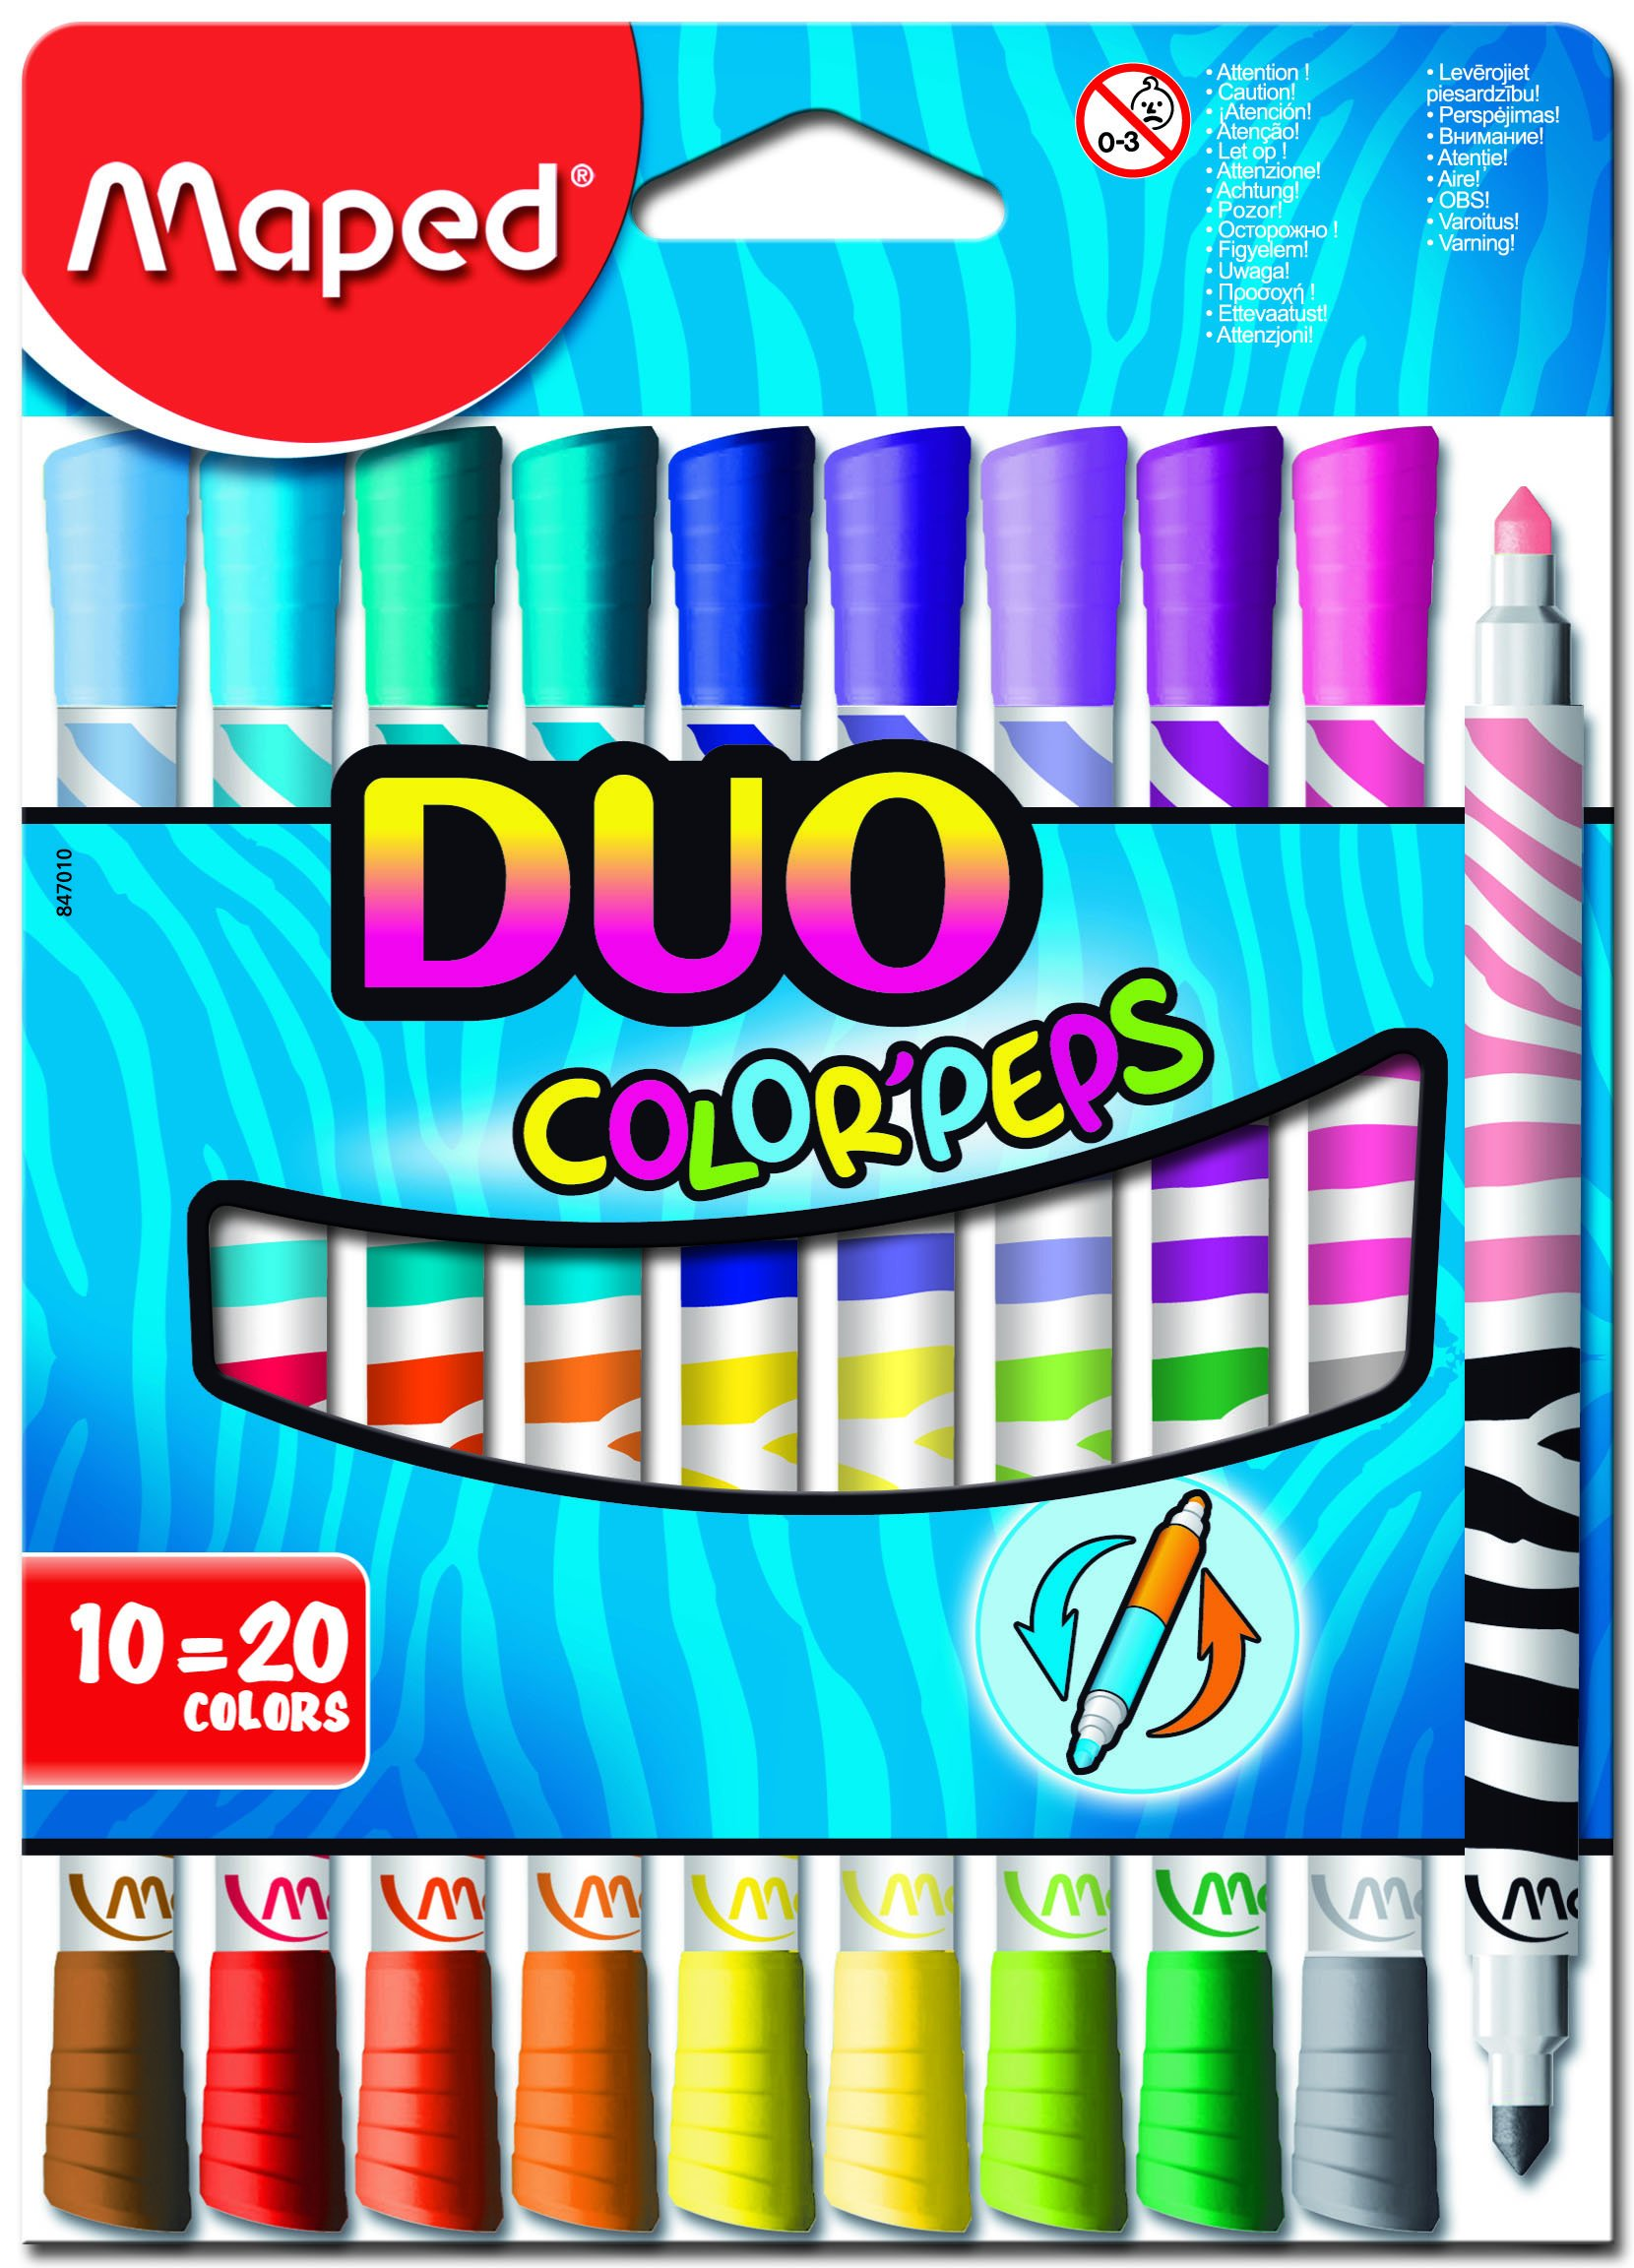 Maped Color'Peps DUO Tip Ultrawashable Markers, Assorted...